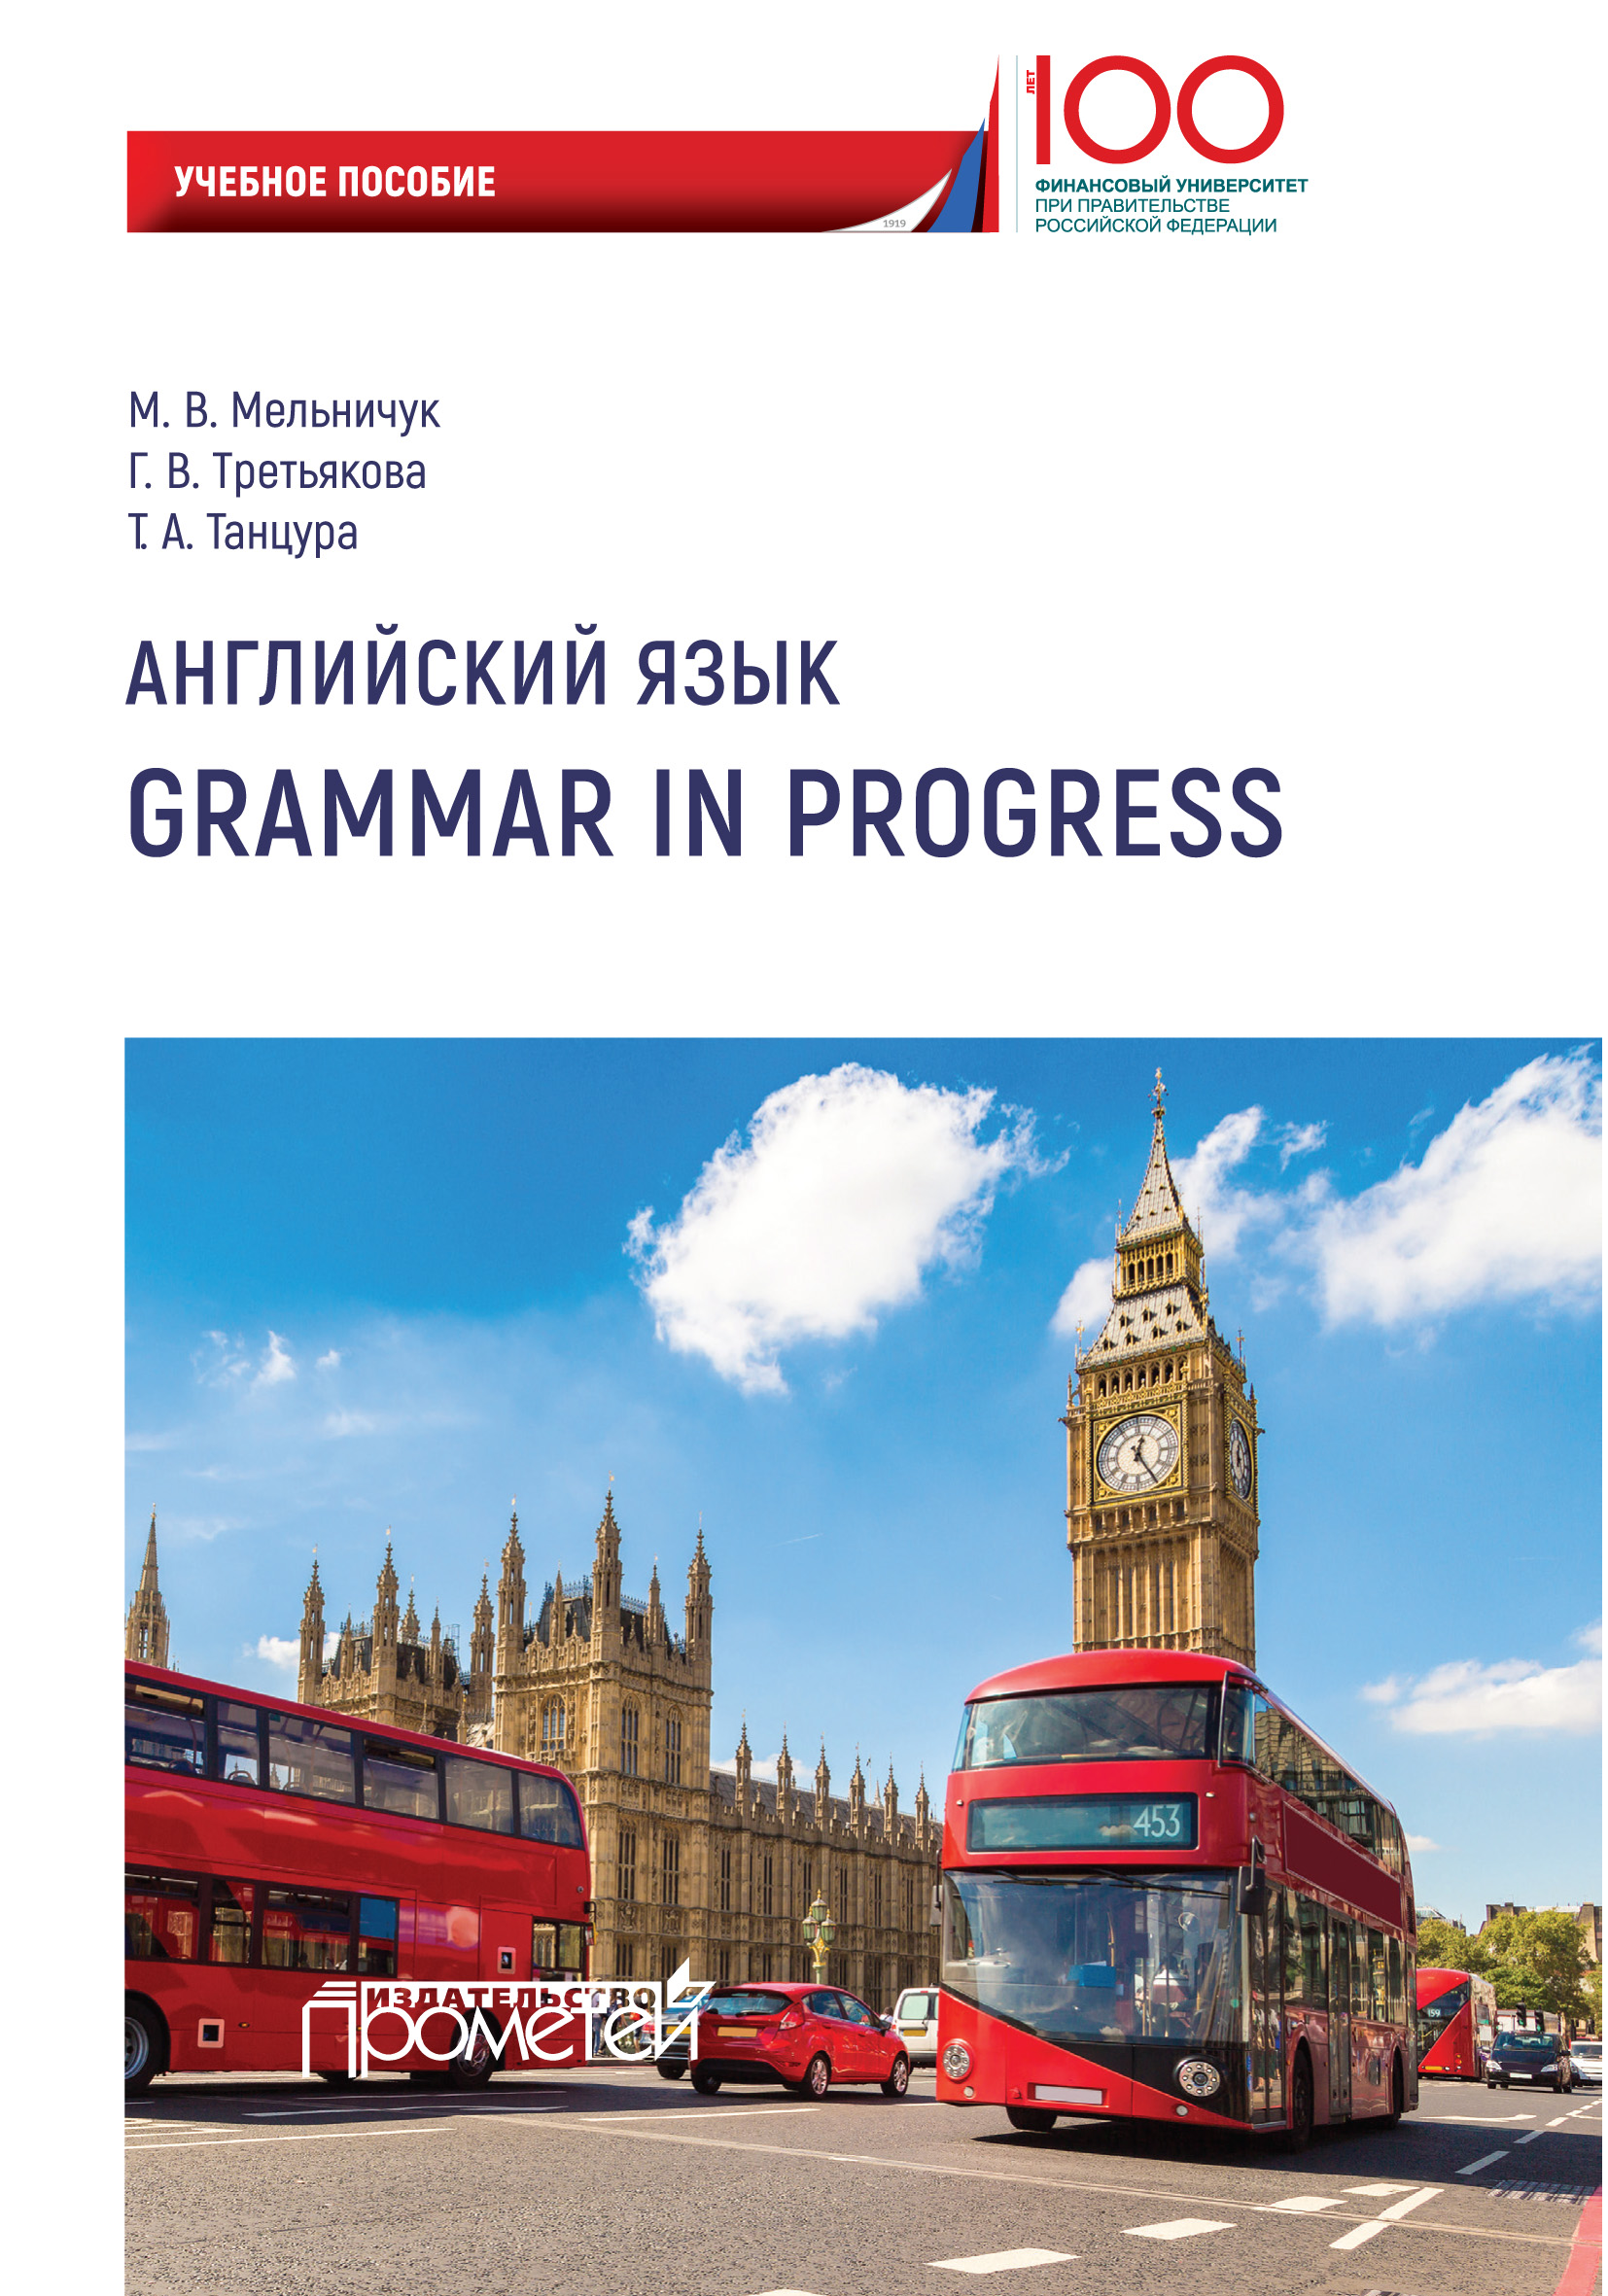 М. В. Мельничук Английский язык. Grammar in Progress author unknown progress in medicinal chemistry 17 17